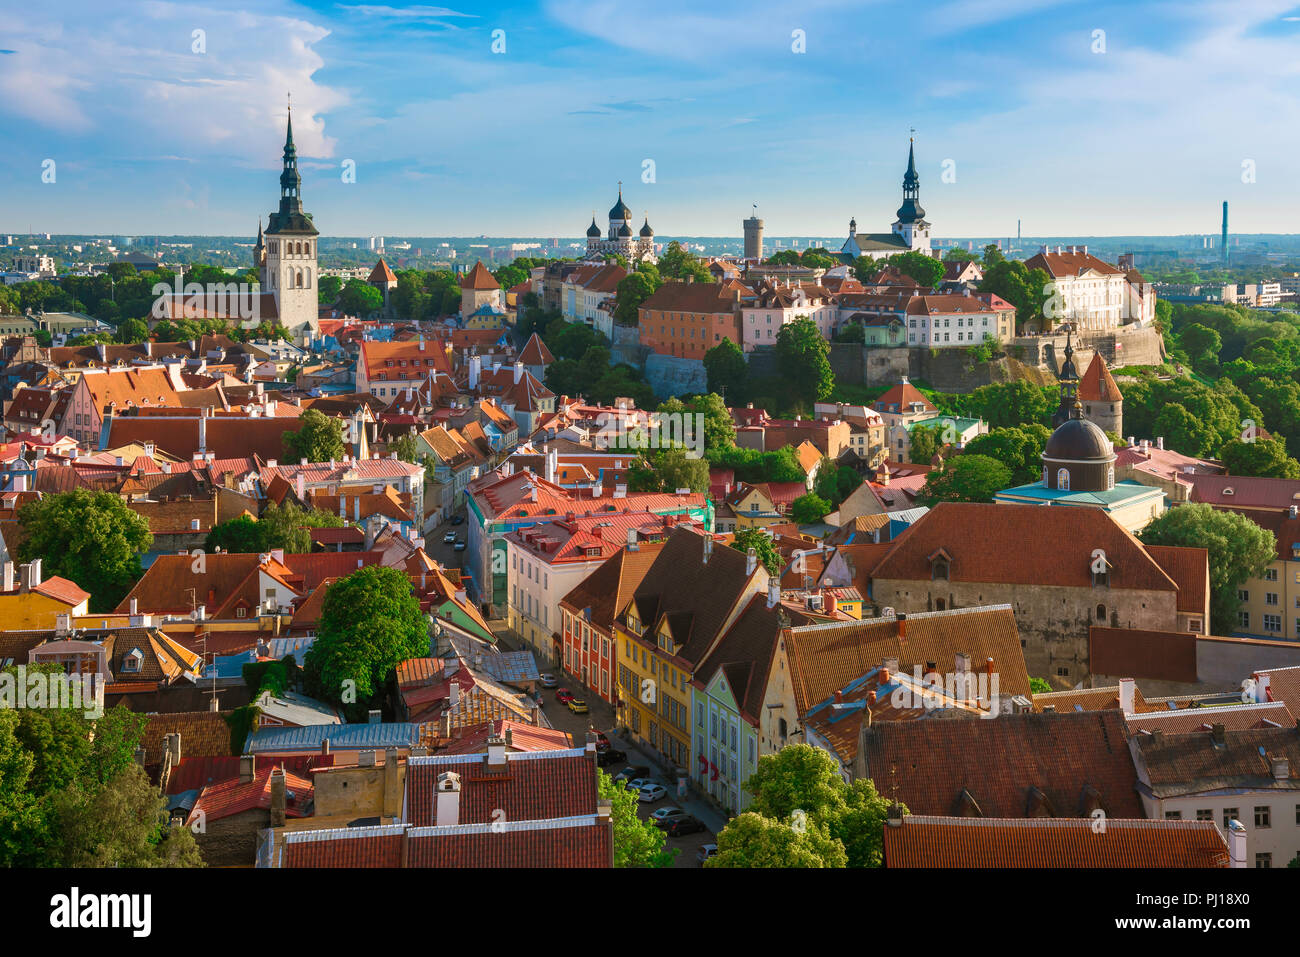 Tallinn cityscape, view across the roofs of the medieval Old Town quarter towards Toompea Hill, Tallinn, Estonia. Stock Photo